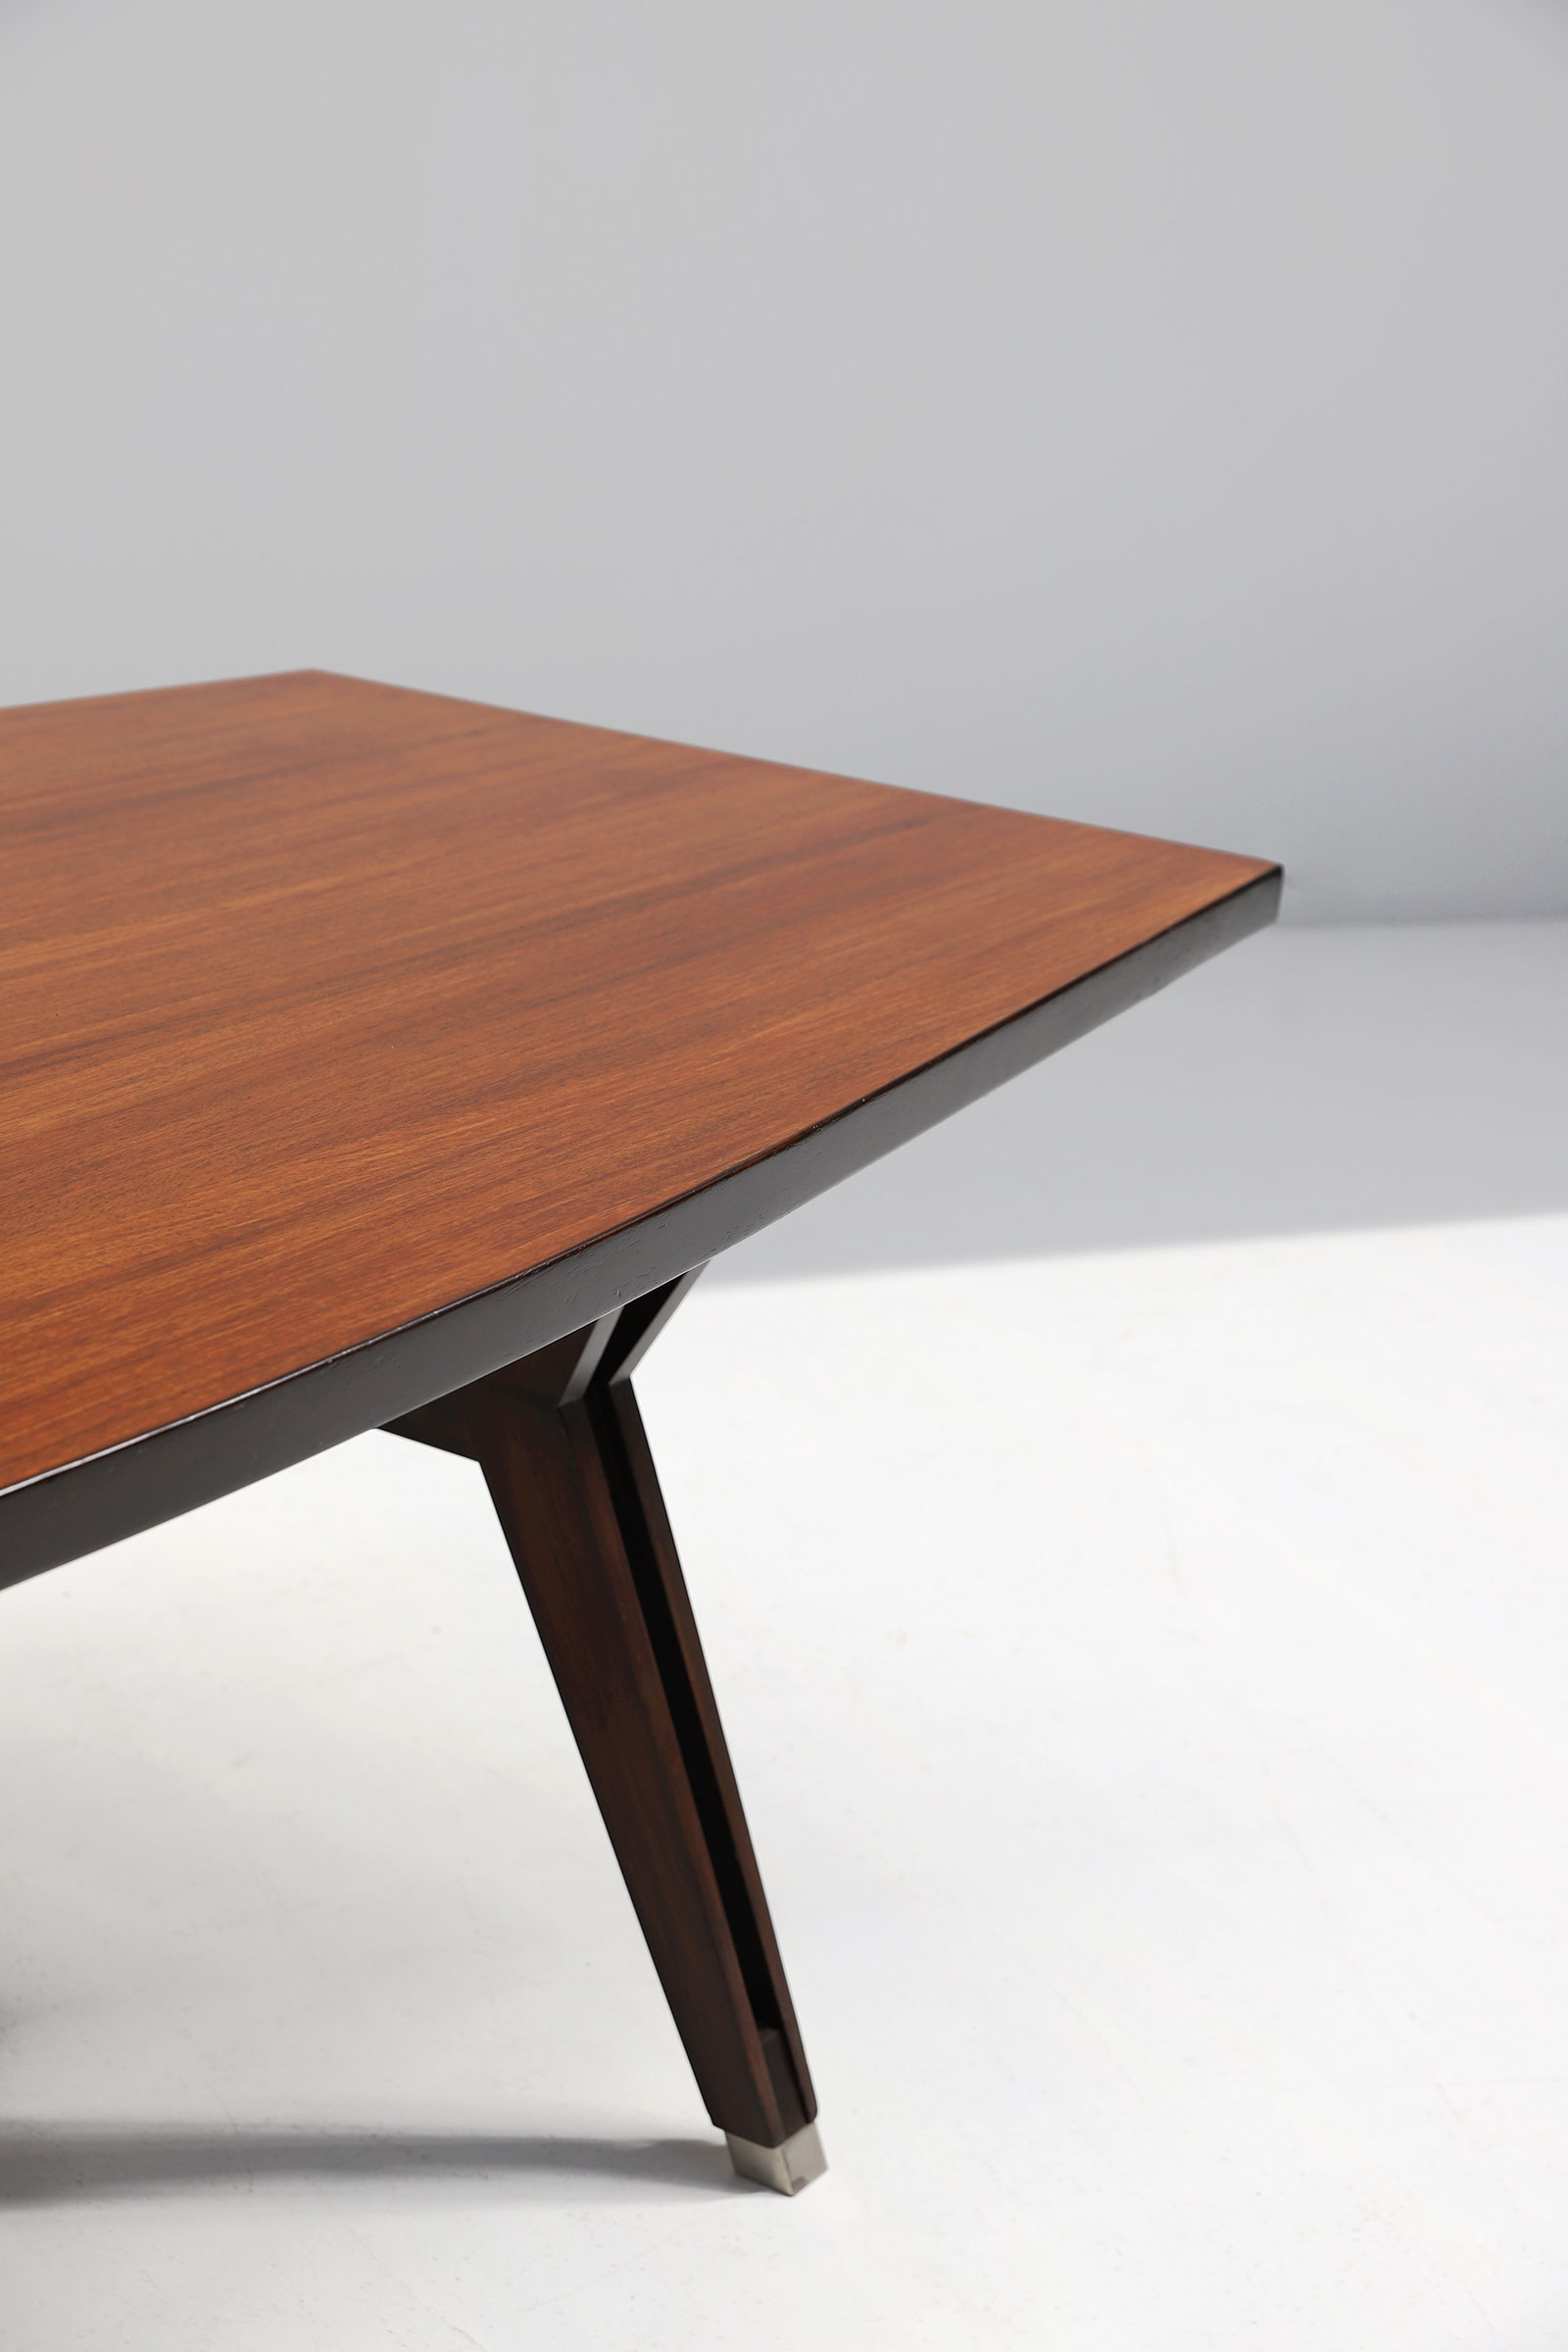 MIM Dining / Conference Table Ico Parisiimage 6